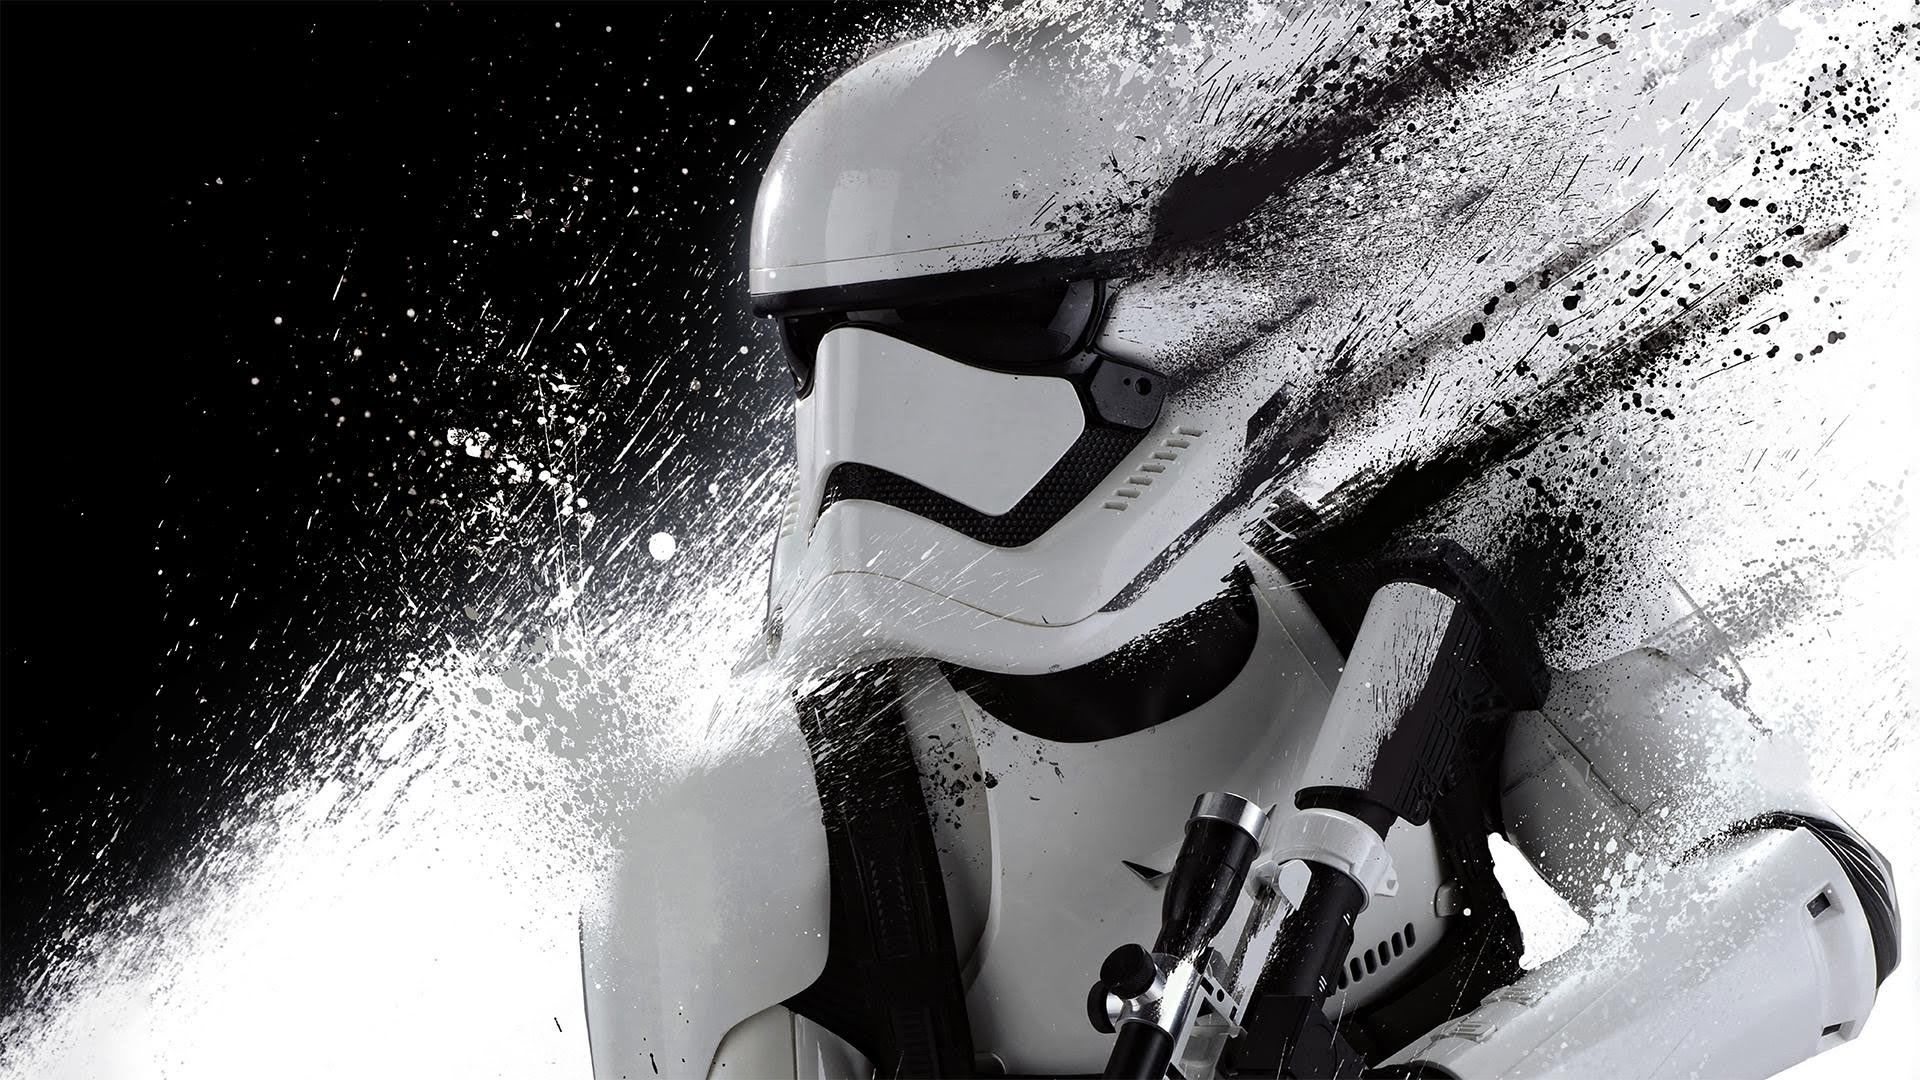 Awesome Star Wars Wallpaper Star Wars Stormtrooper Background 8977 Hd Wallpaper Backgrounds Download